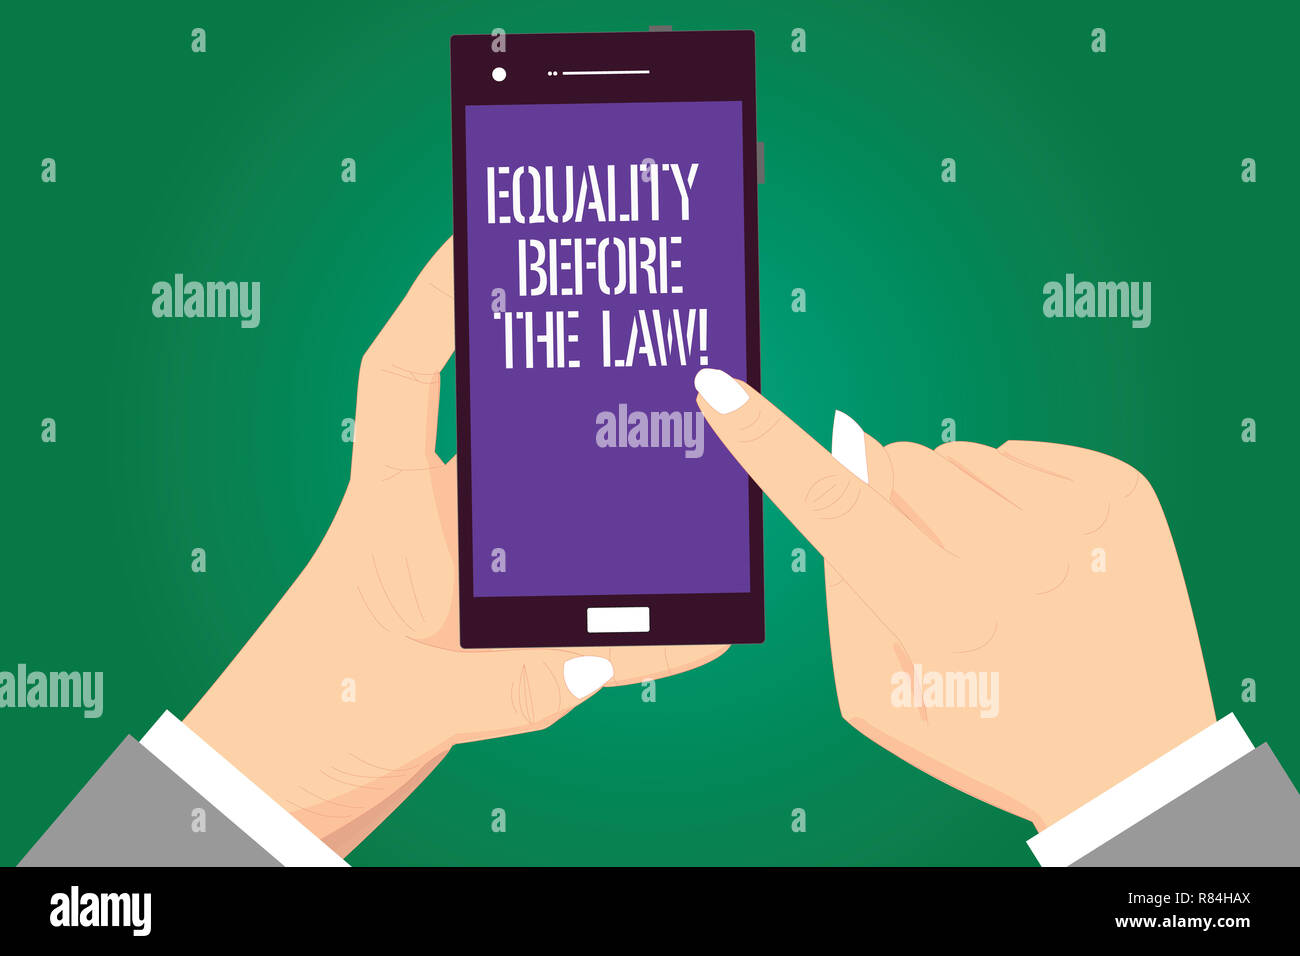 handwriting text equality before the law concept meaning justice